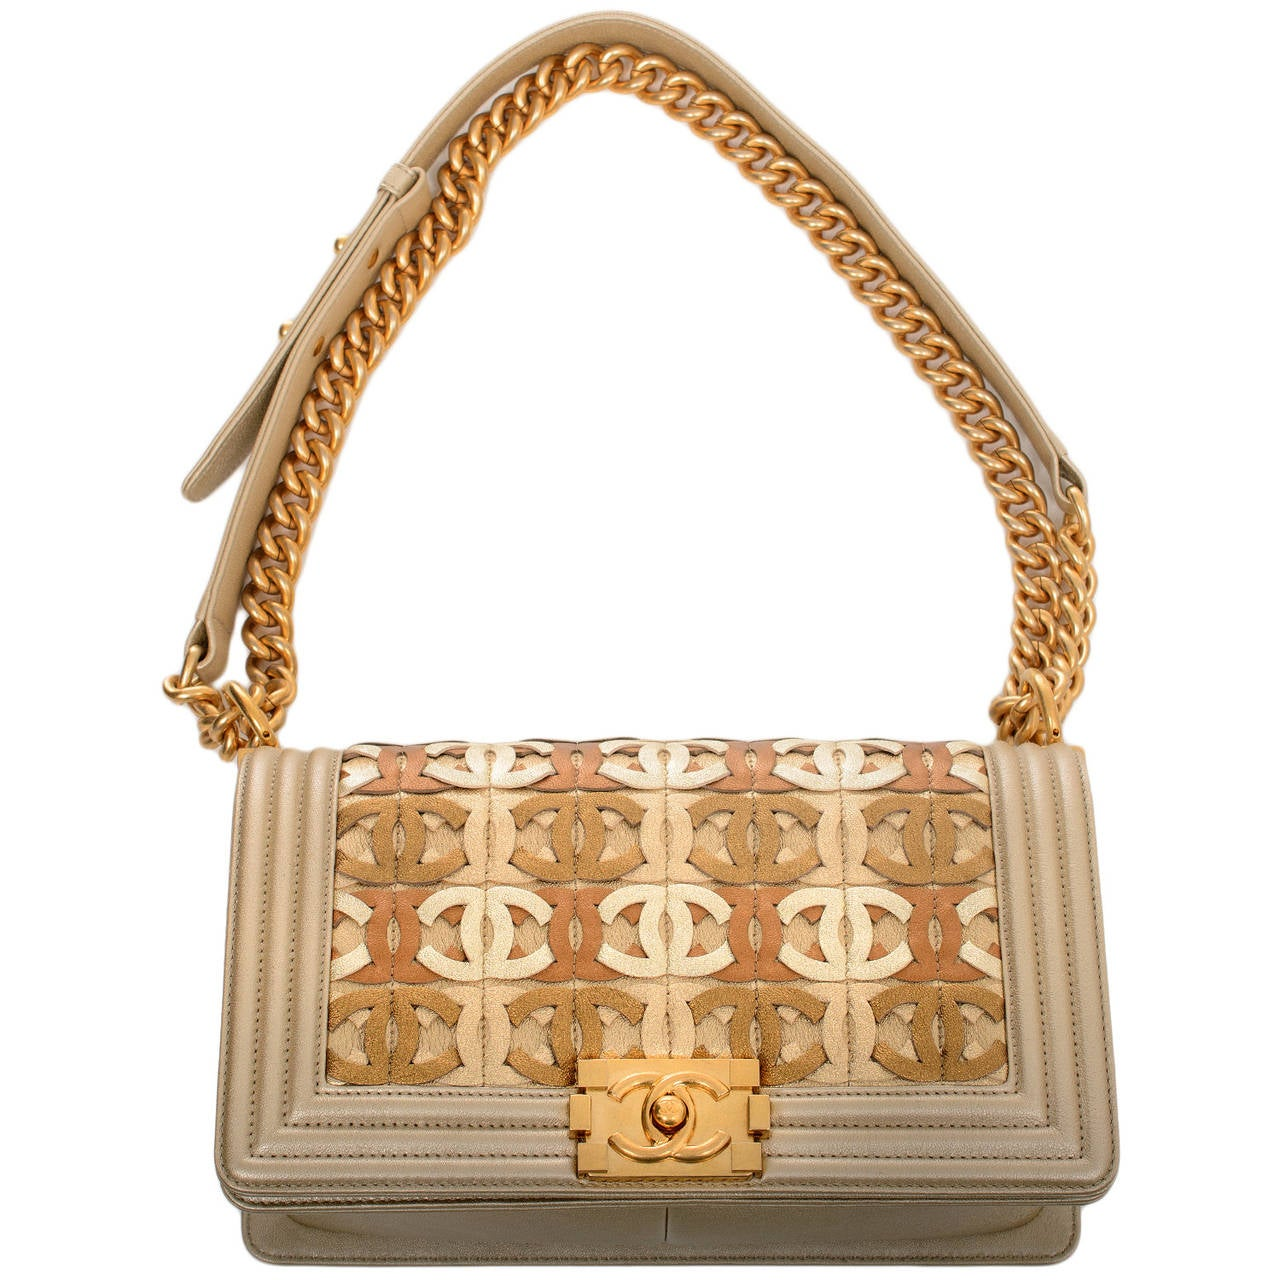 Chanel Runway Gold Metallic CC Embellished Lambskin Medium Boy Bag For Sale 1